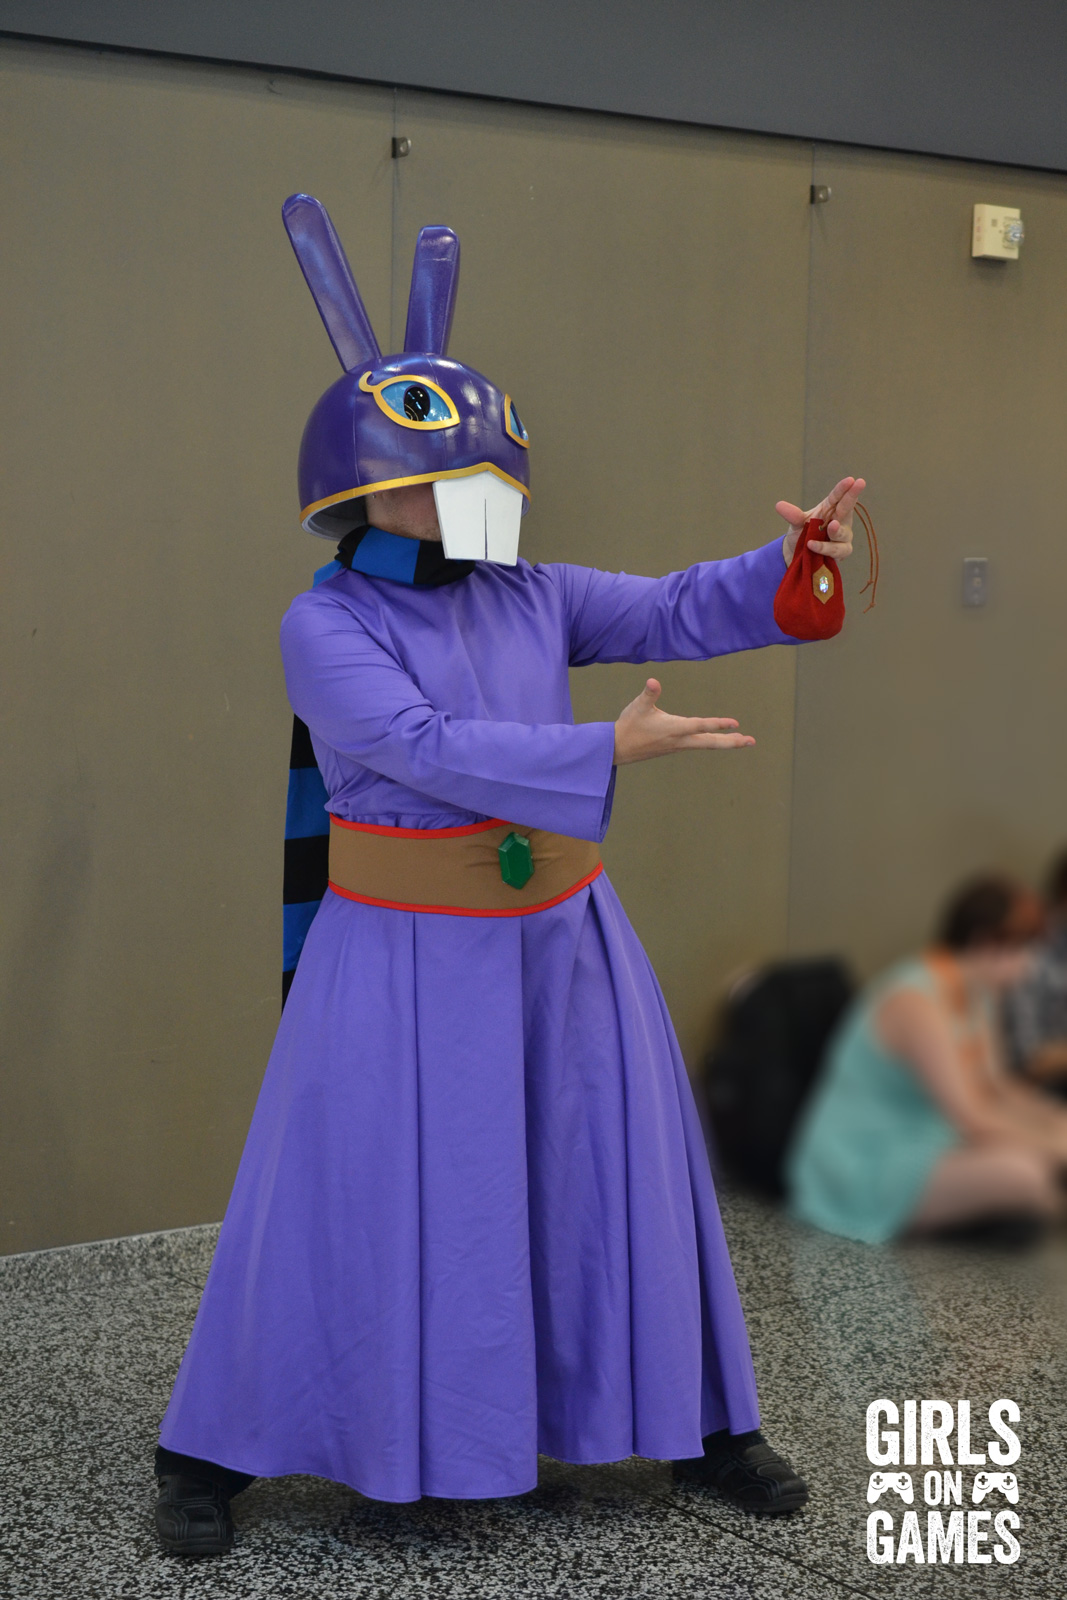 Ravio (The Legend of Zelda) cosplay at Otakuthon 2015.